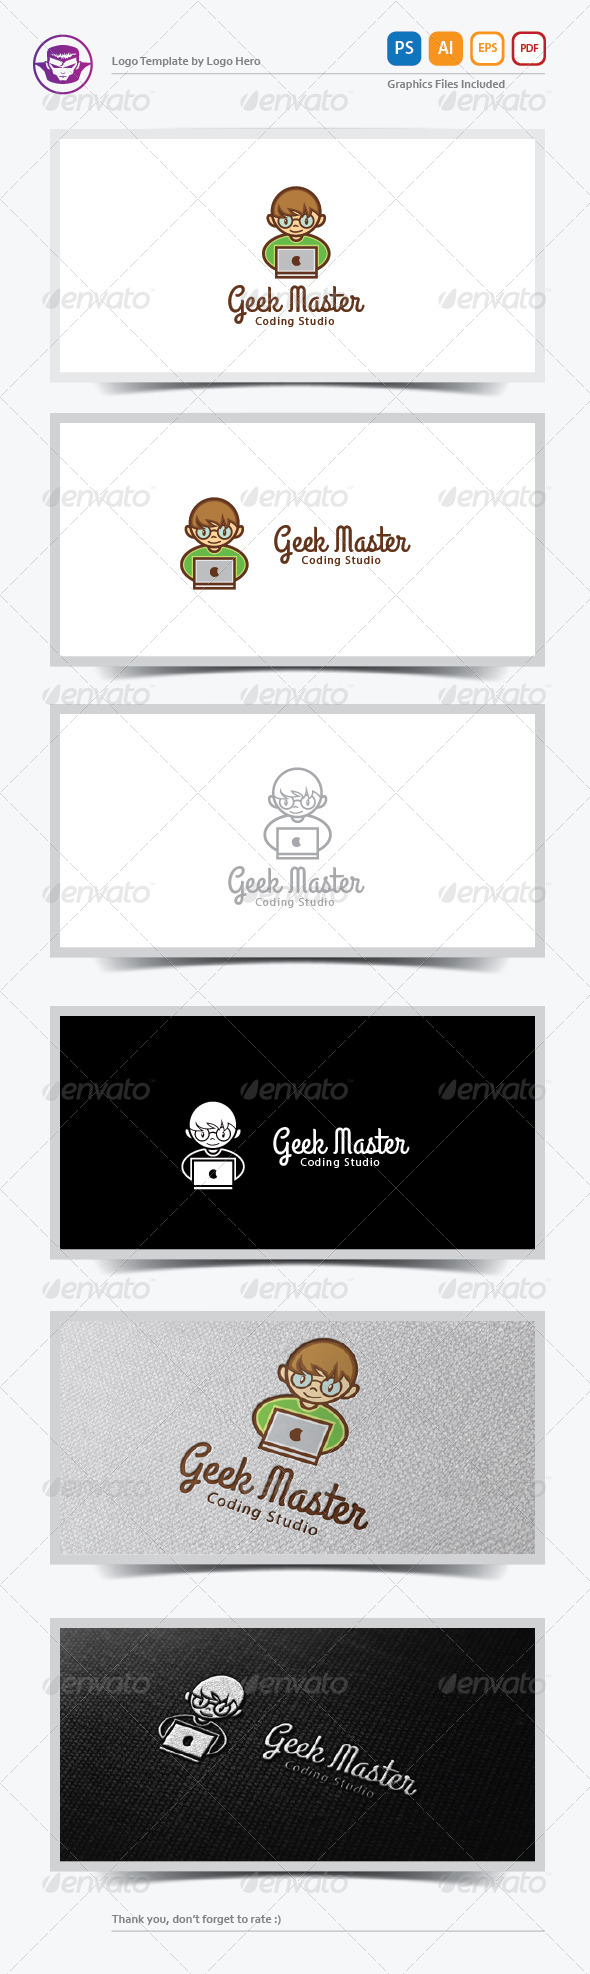 GraphicRiver Geek Master Logo Template 6390631